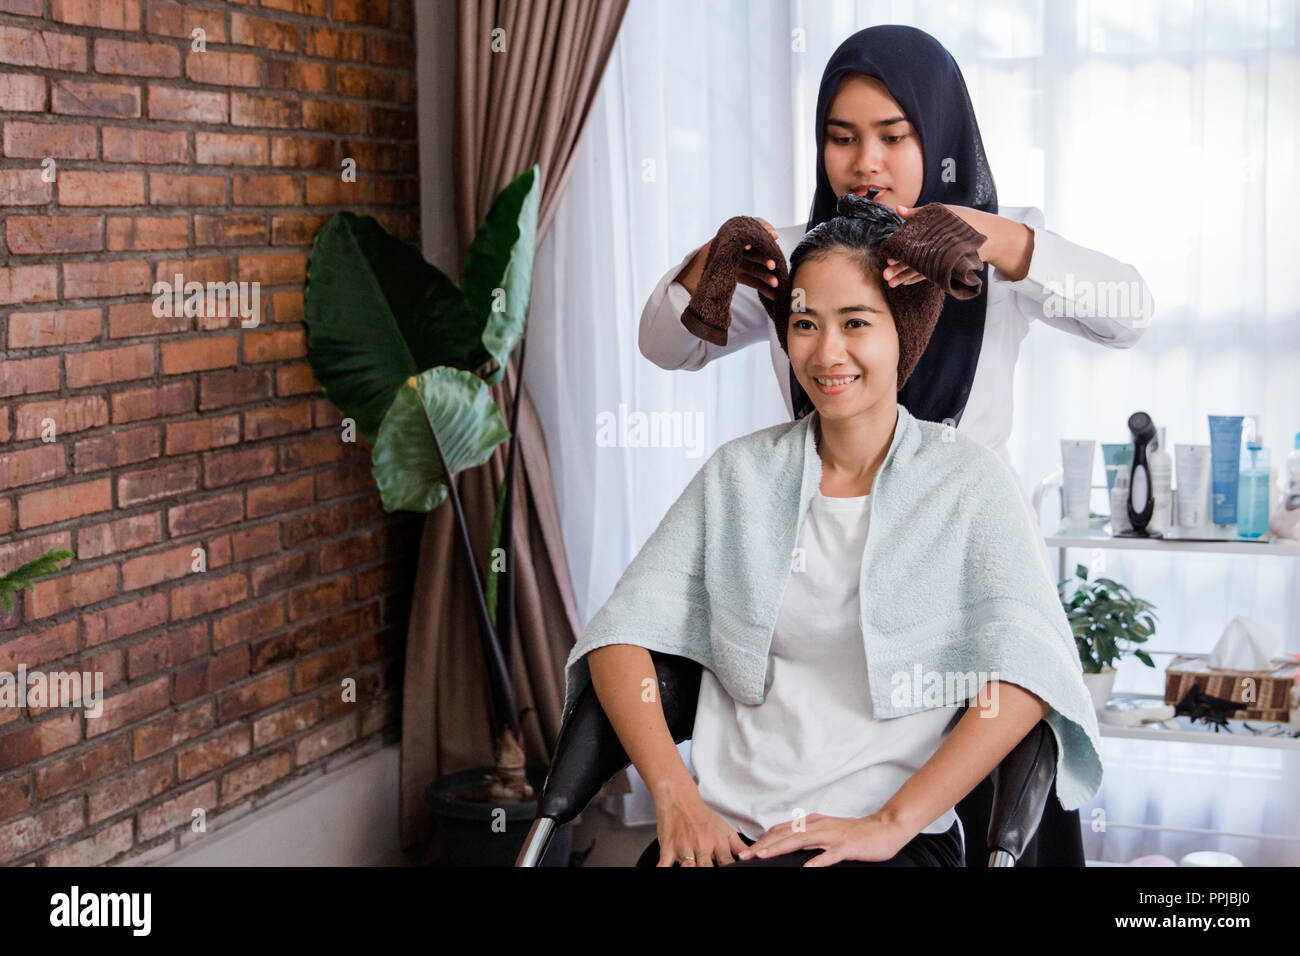 Woman Hair Treatment In Beauty Salon Stock Photo Alamy